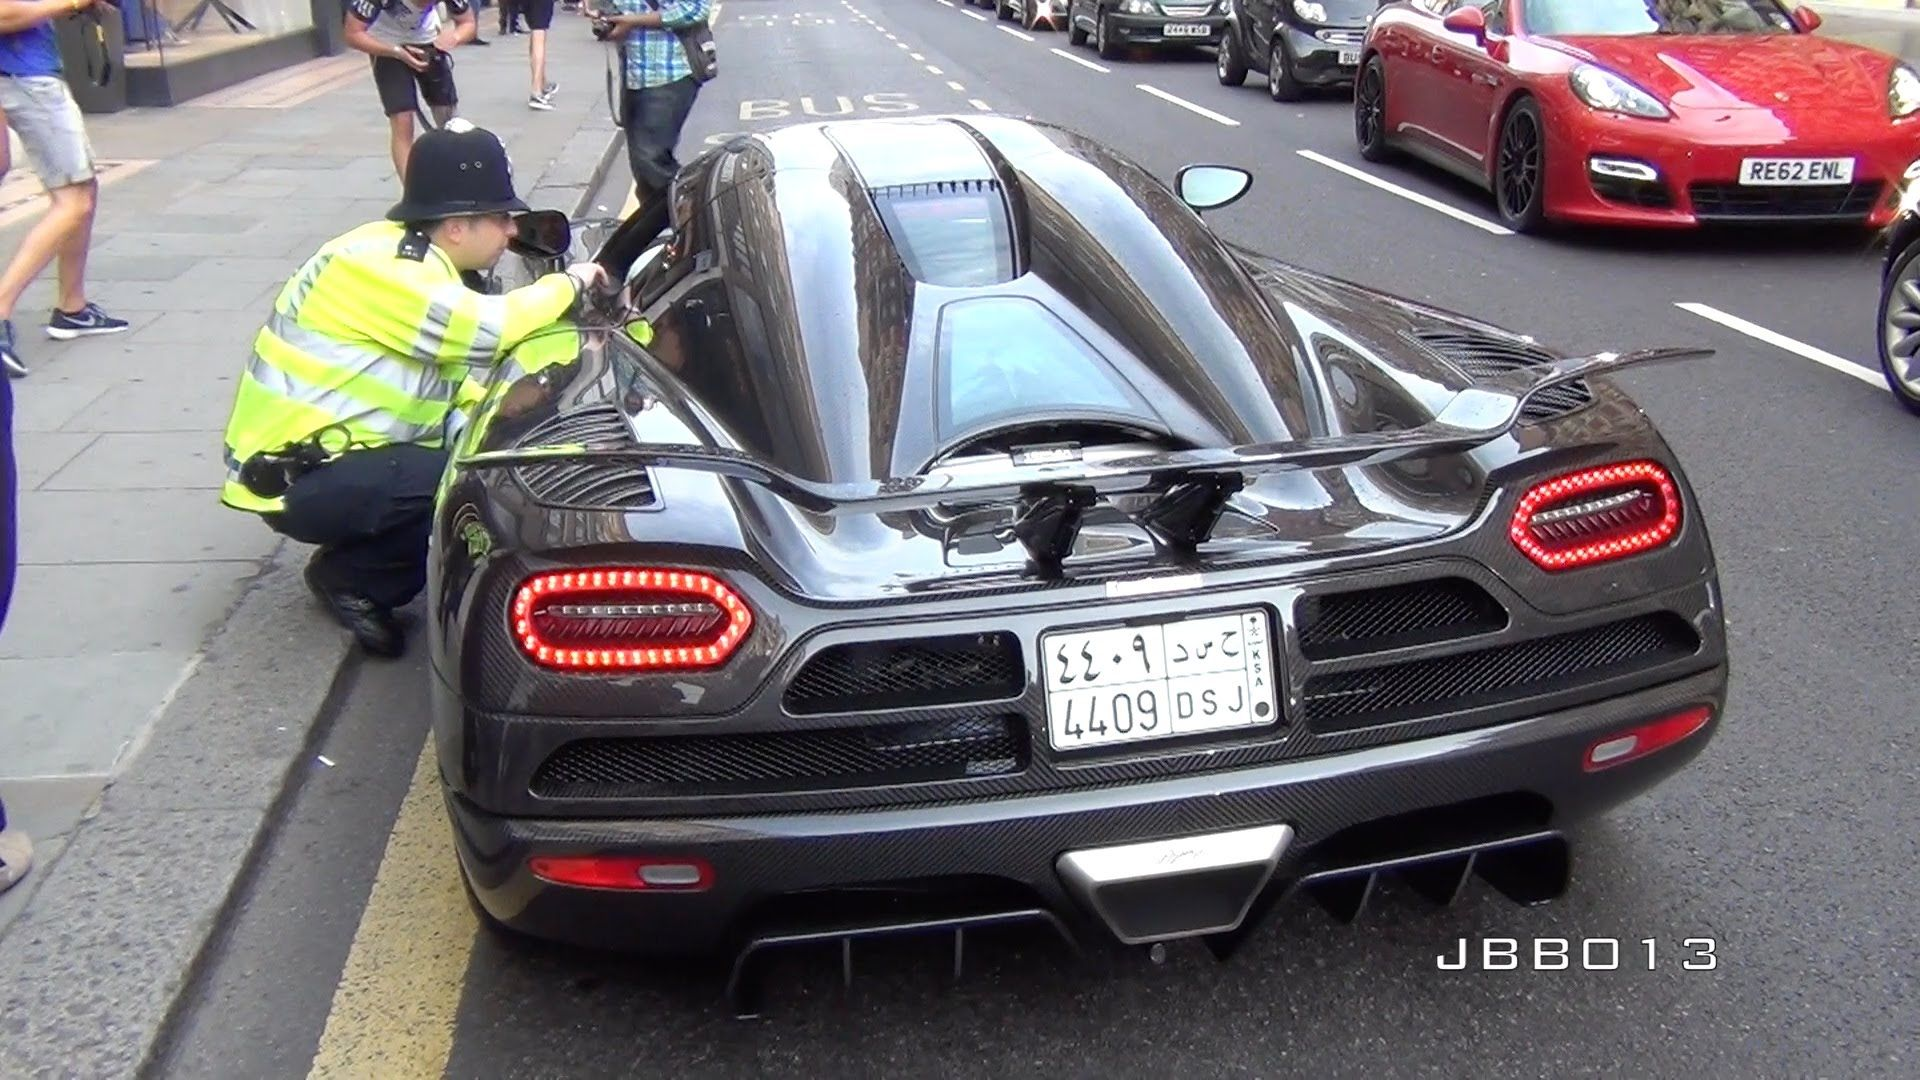 Uvioo Com Police Vs The Arab Supercars In London Super Cars Police London